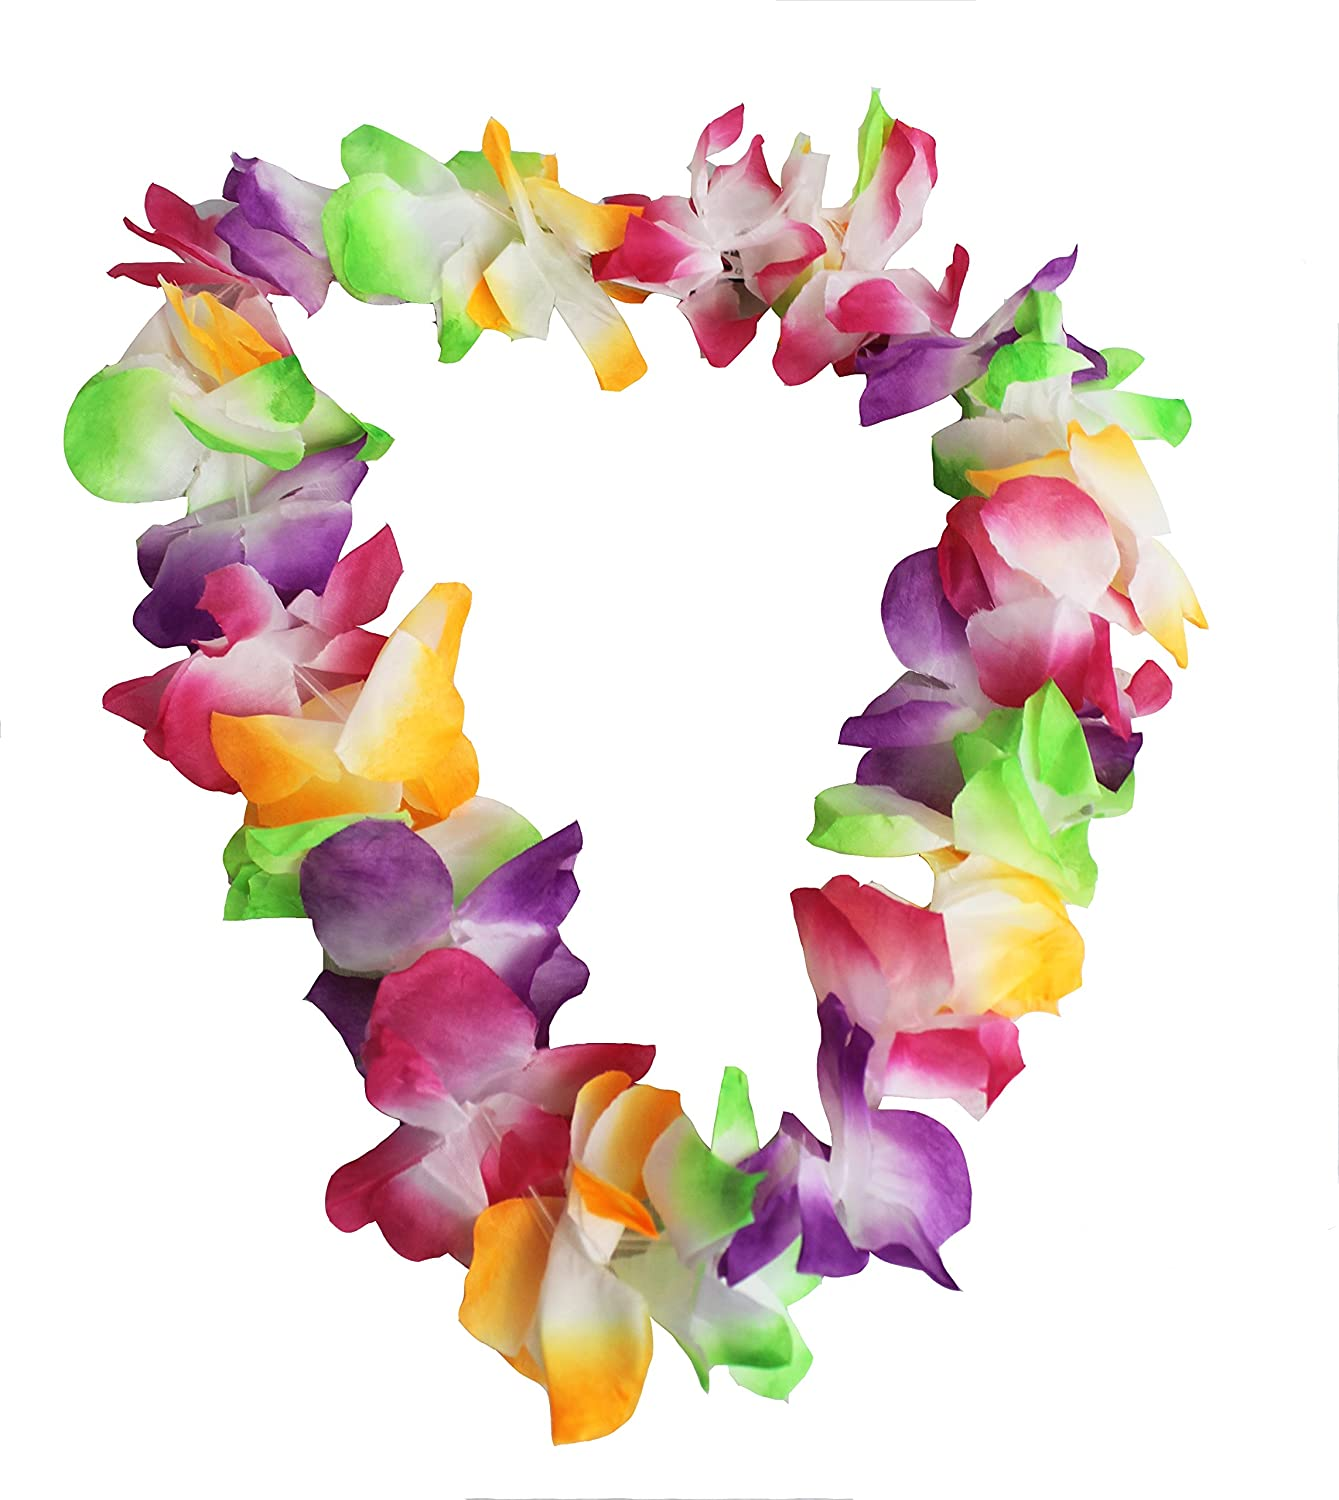 paradise lei your is garland silk premium design luau party hawaiian hawaii for leys in necklace with lay products tropical vibrant perfect floral mutli flower leis color these ct luaus